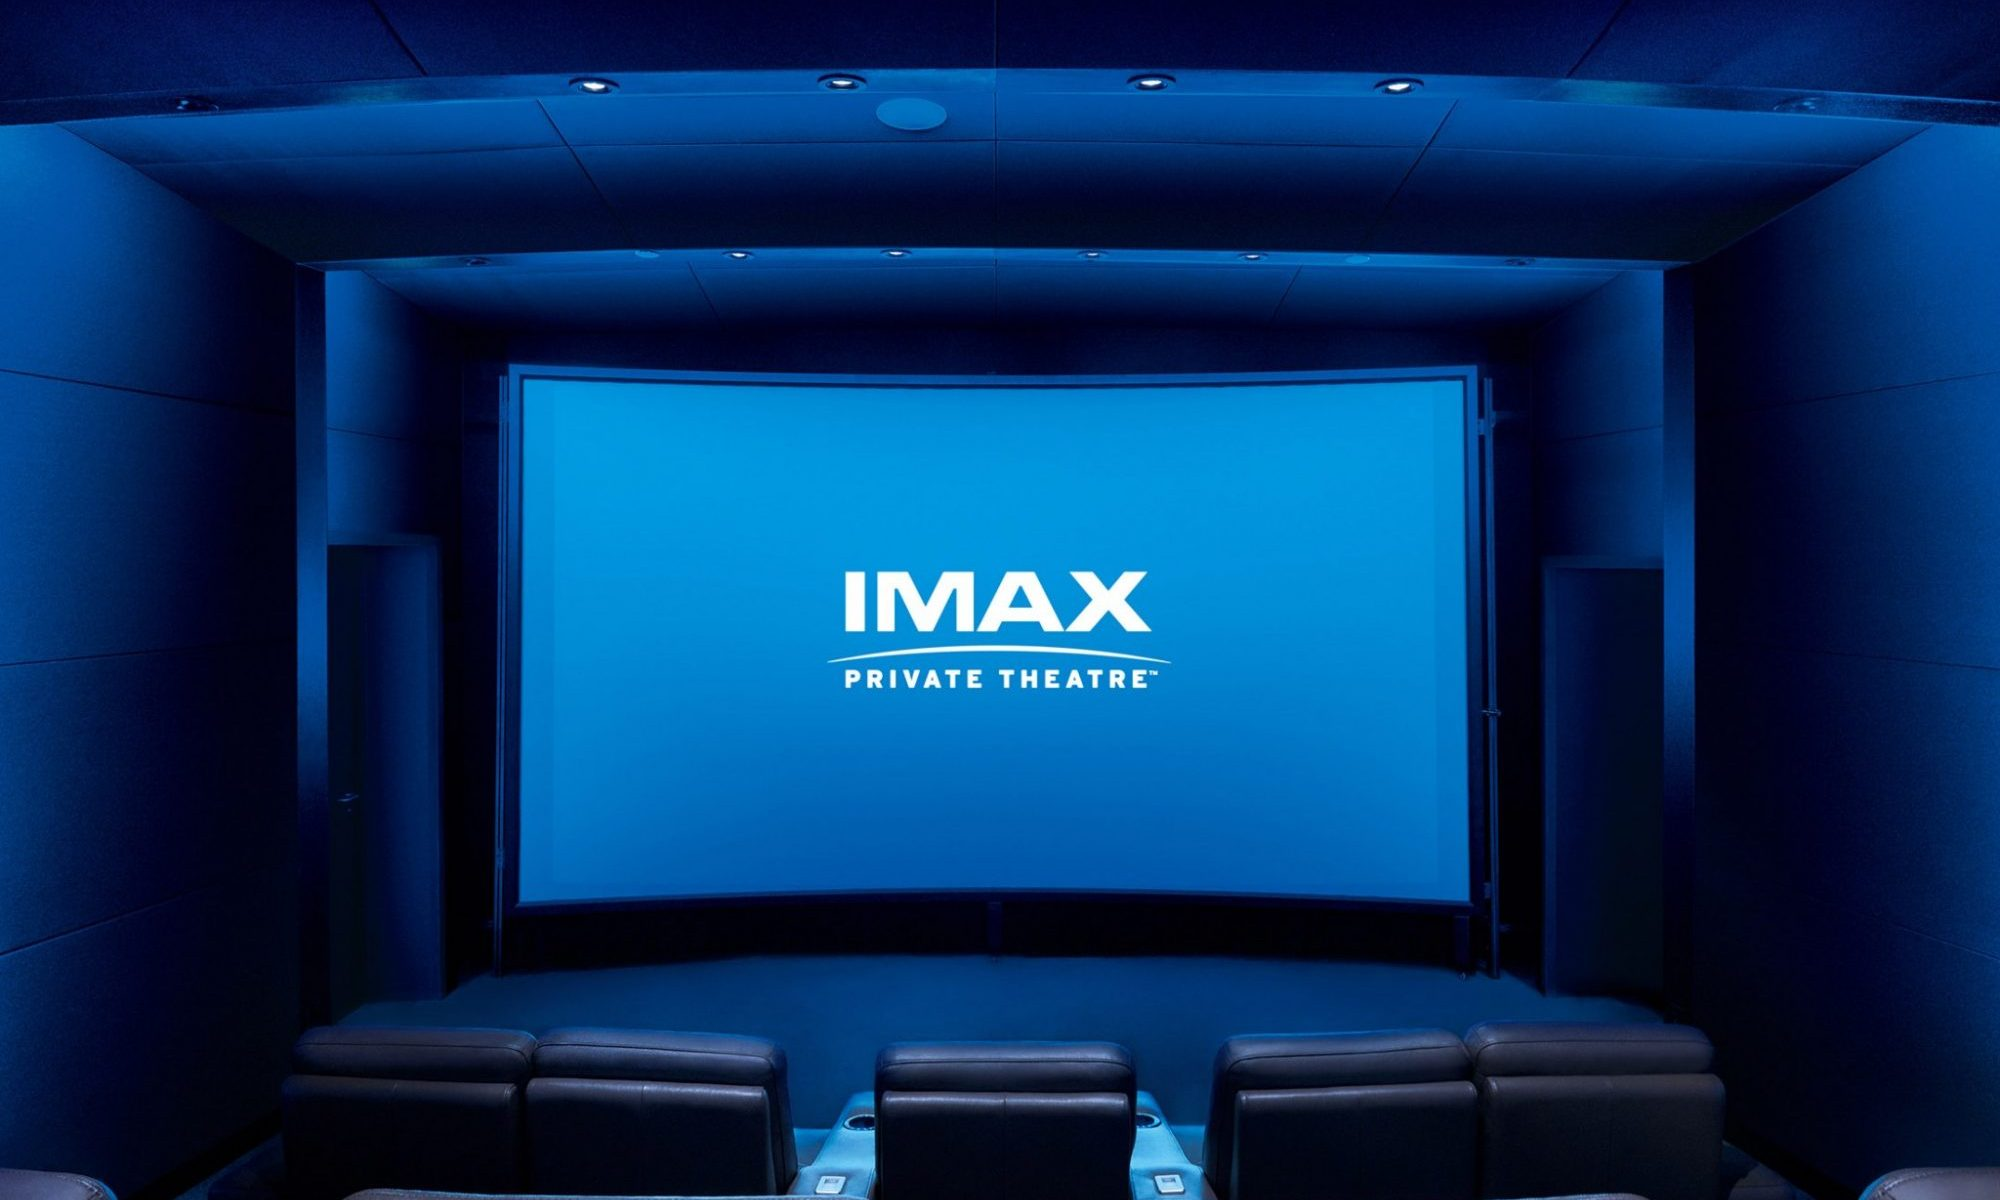 IMAX Private Theatre